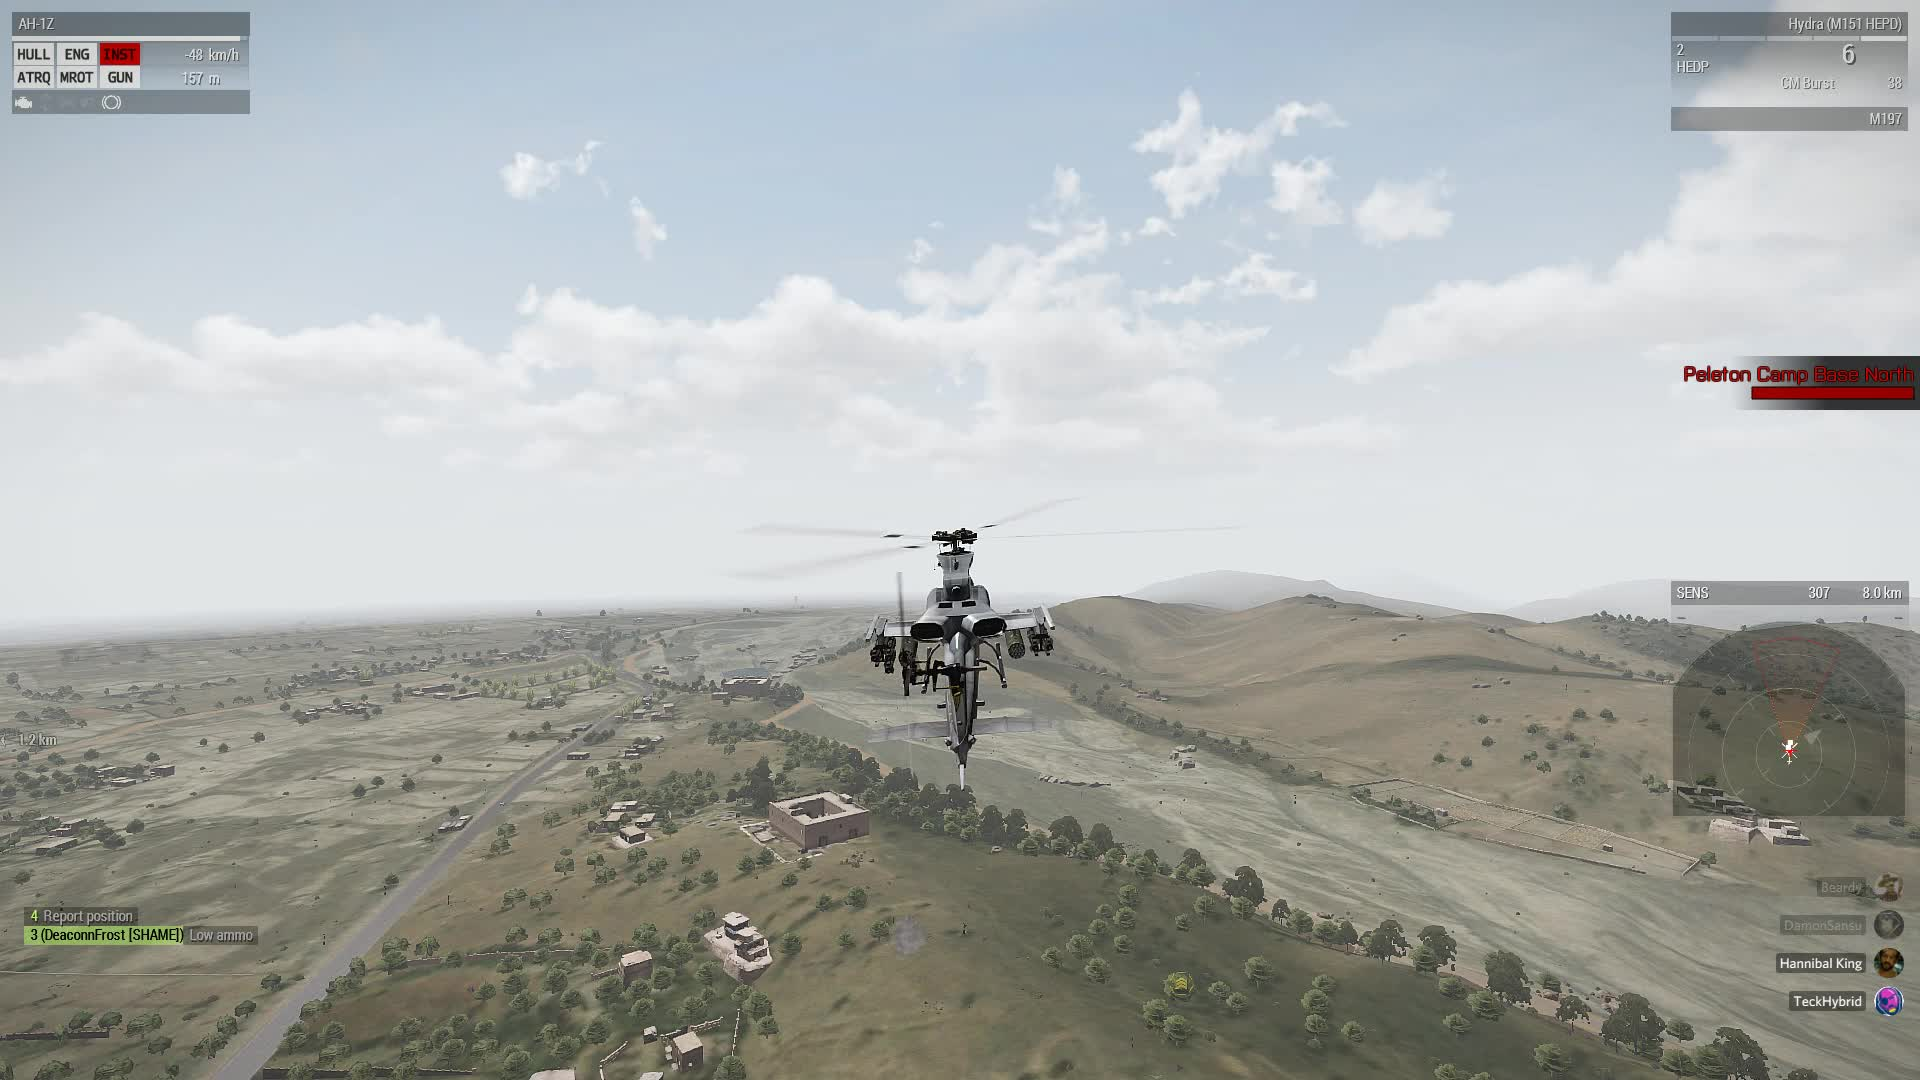 ▷ Civ 6 Nuke GIF by deaconnfrost - Find & Download & Share GIFs on